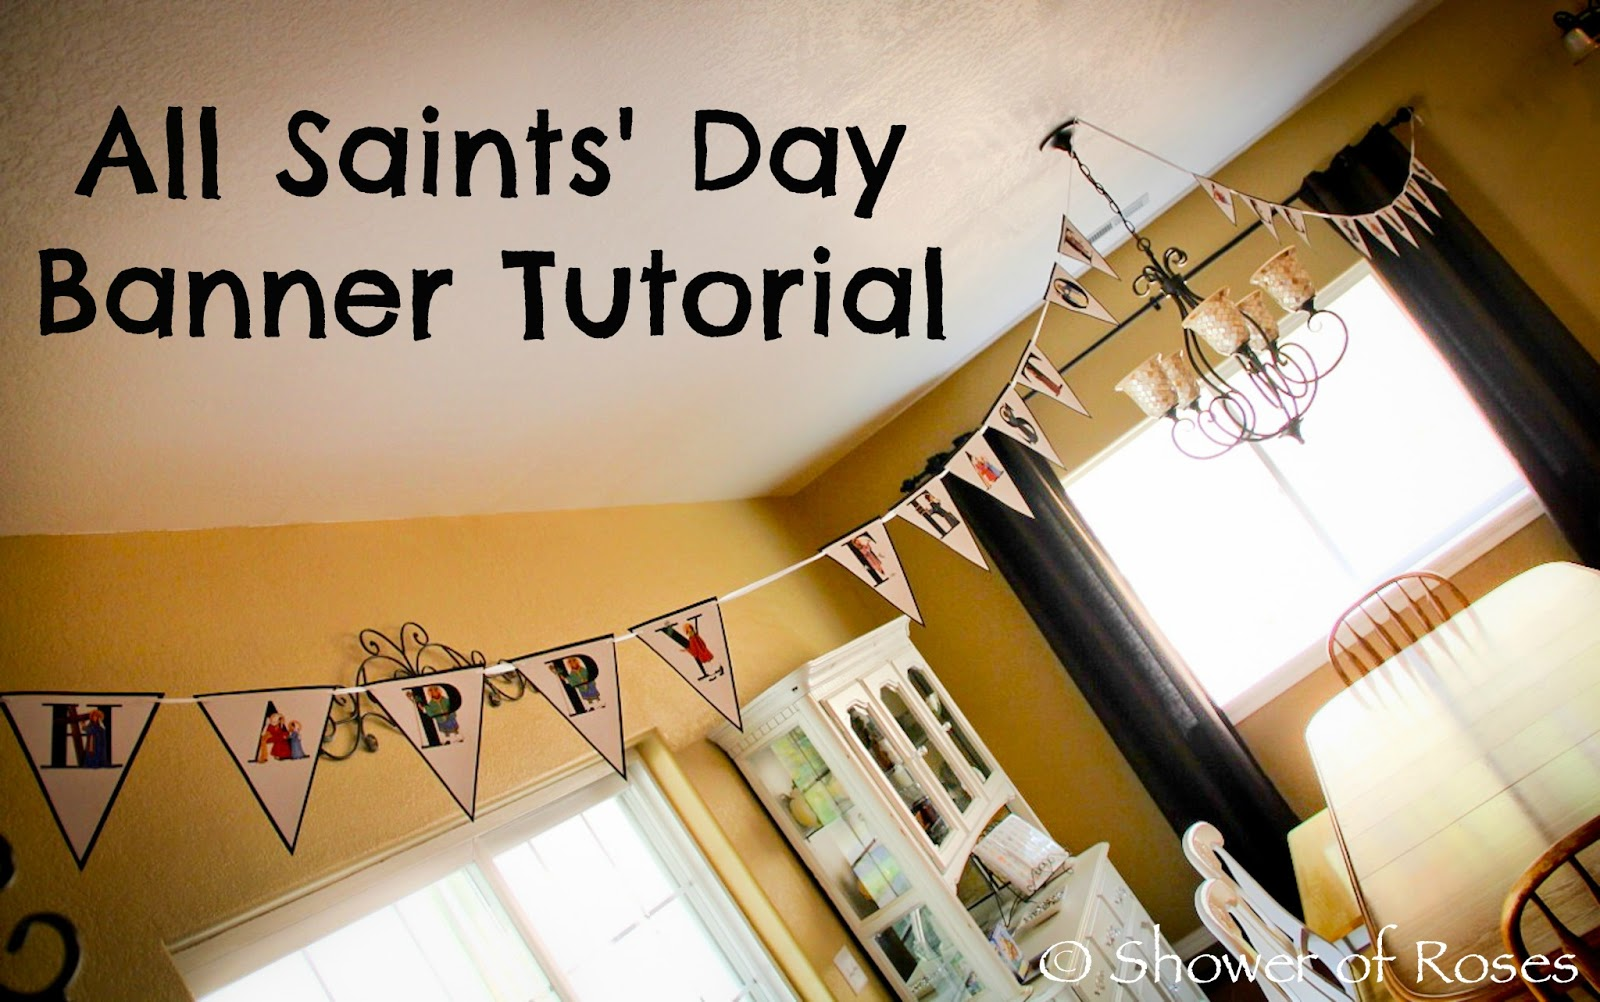 Shower Of Roses All Saints Day Banner Tutorial